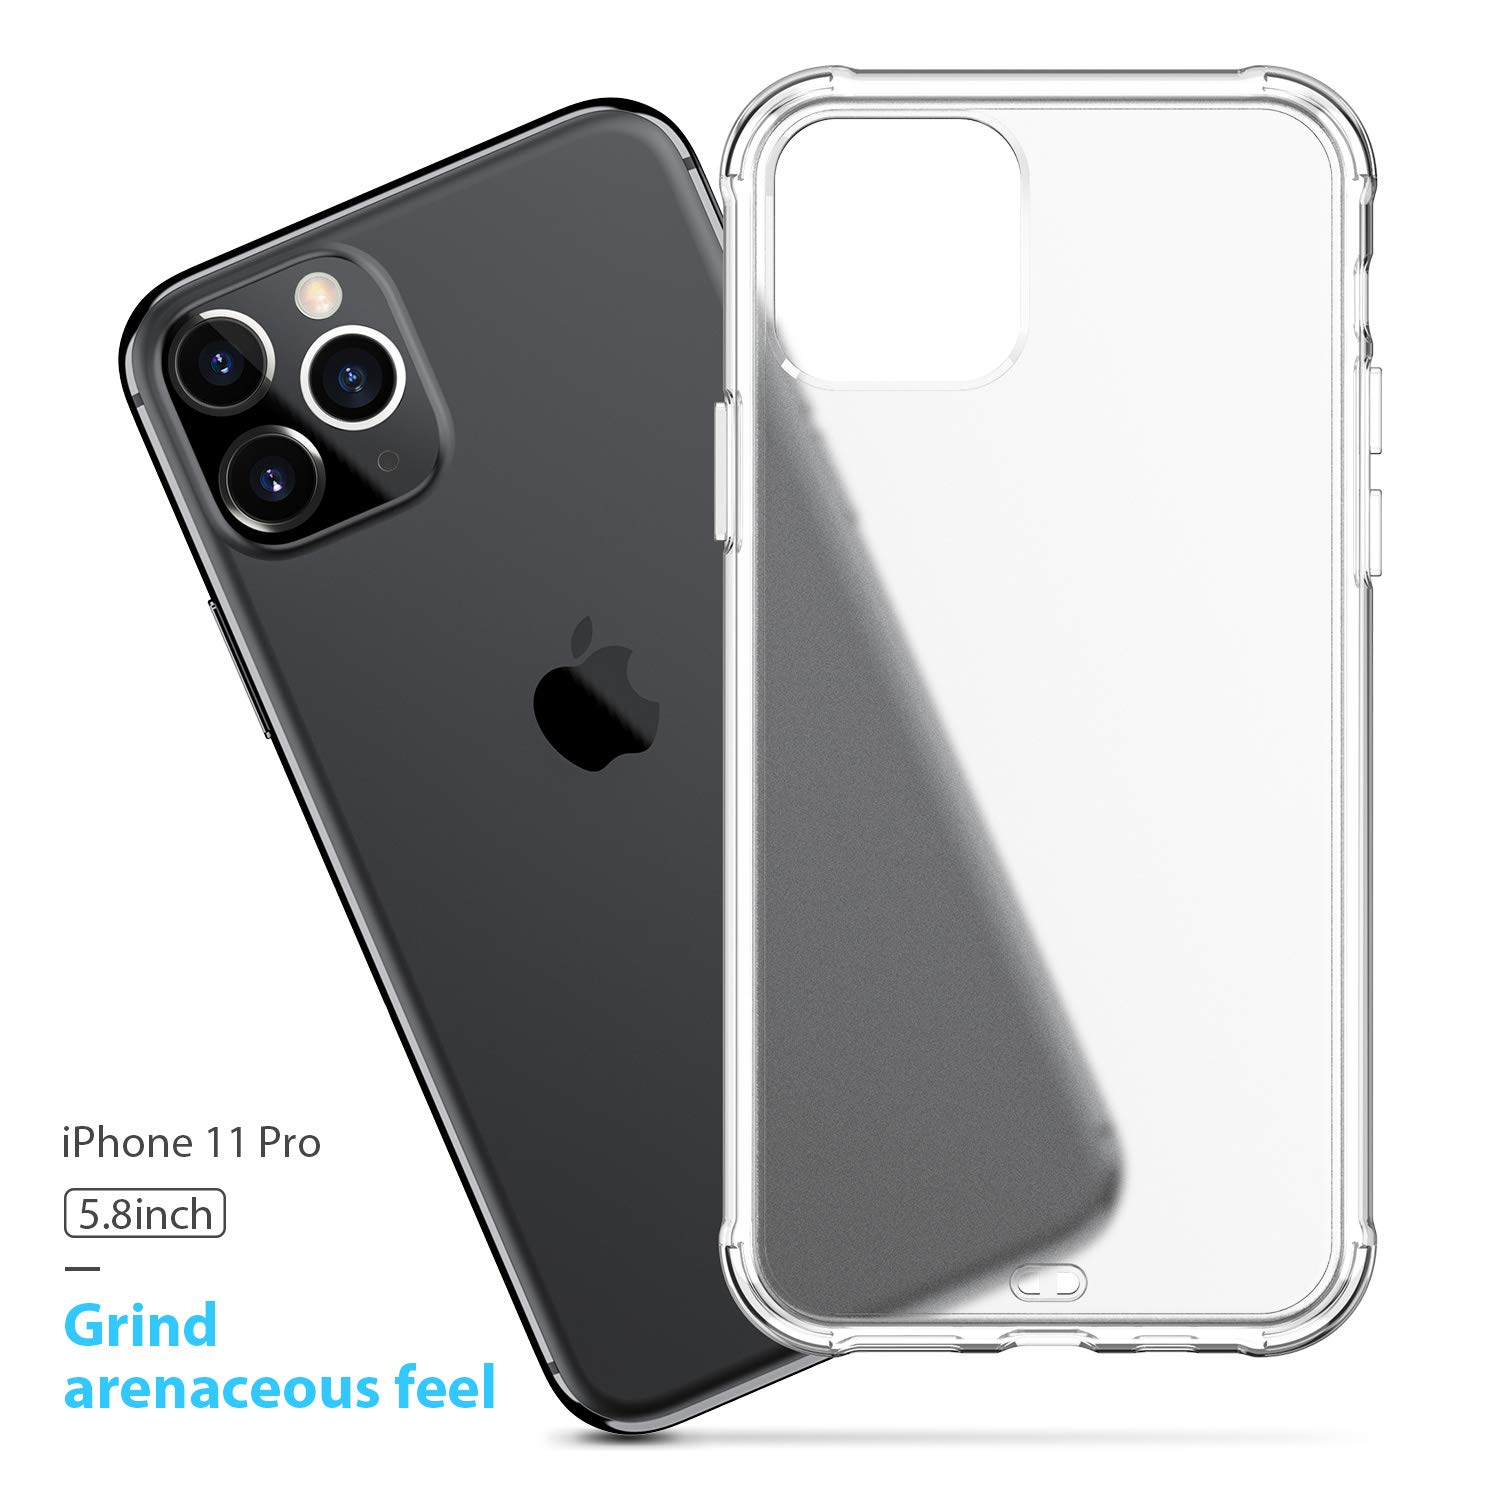 ORIbox Case for iPhone 11 pro, Translucent Matte case with Soft Edges, Shockproof and Anti-Drop Protection Case Designed for iPhone 11 pro, Clear